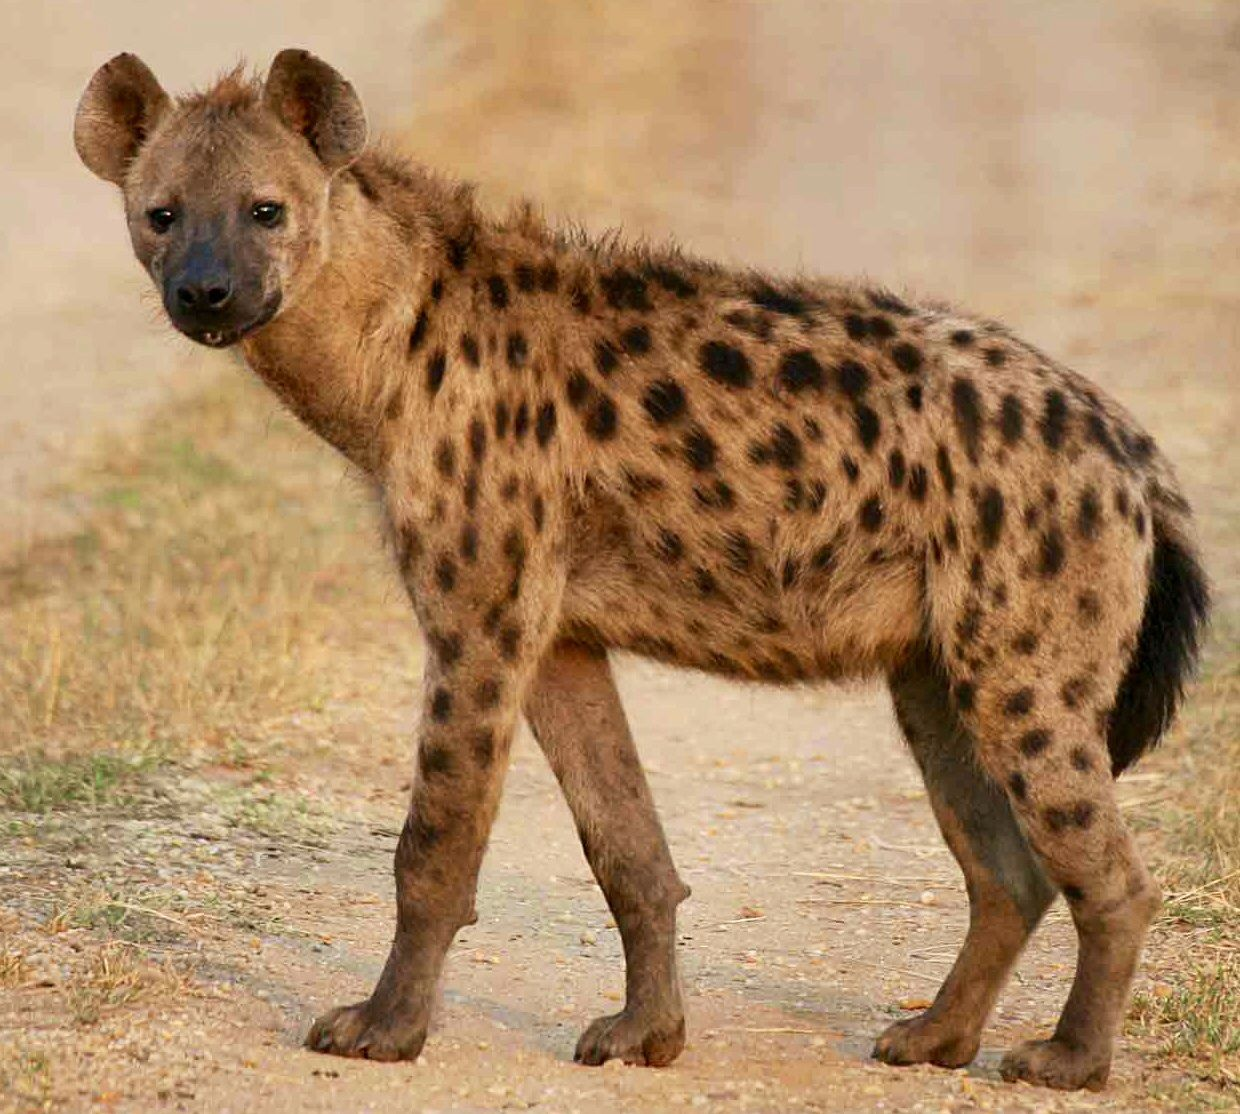 The spotted hyena has a strong and well developed neck and